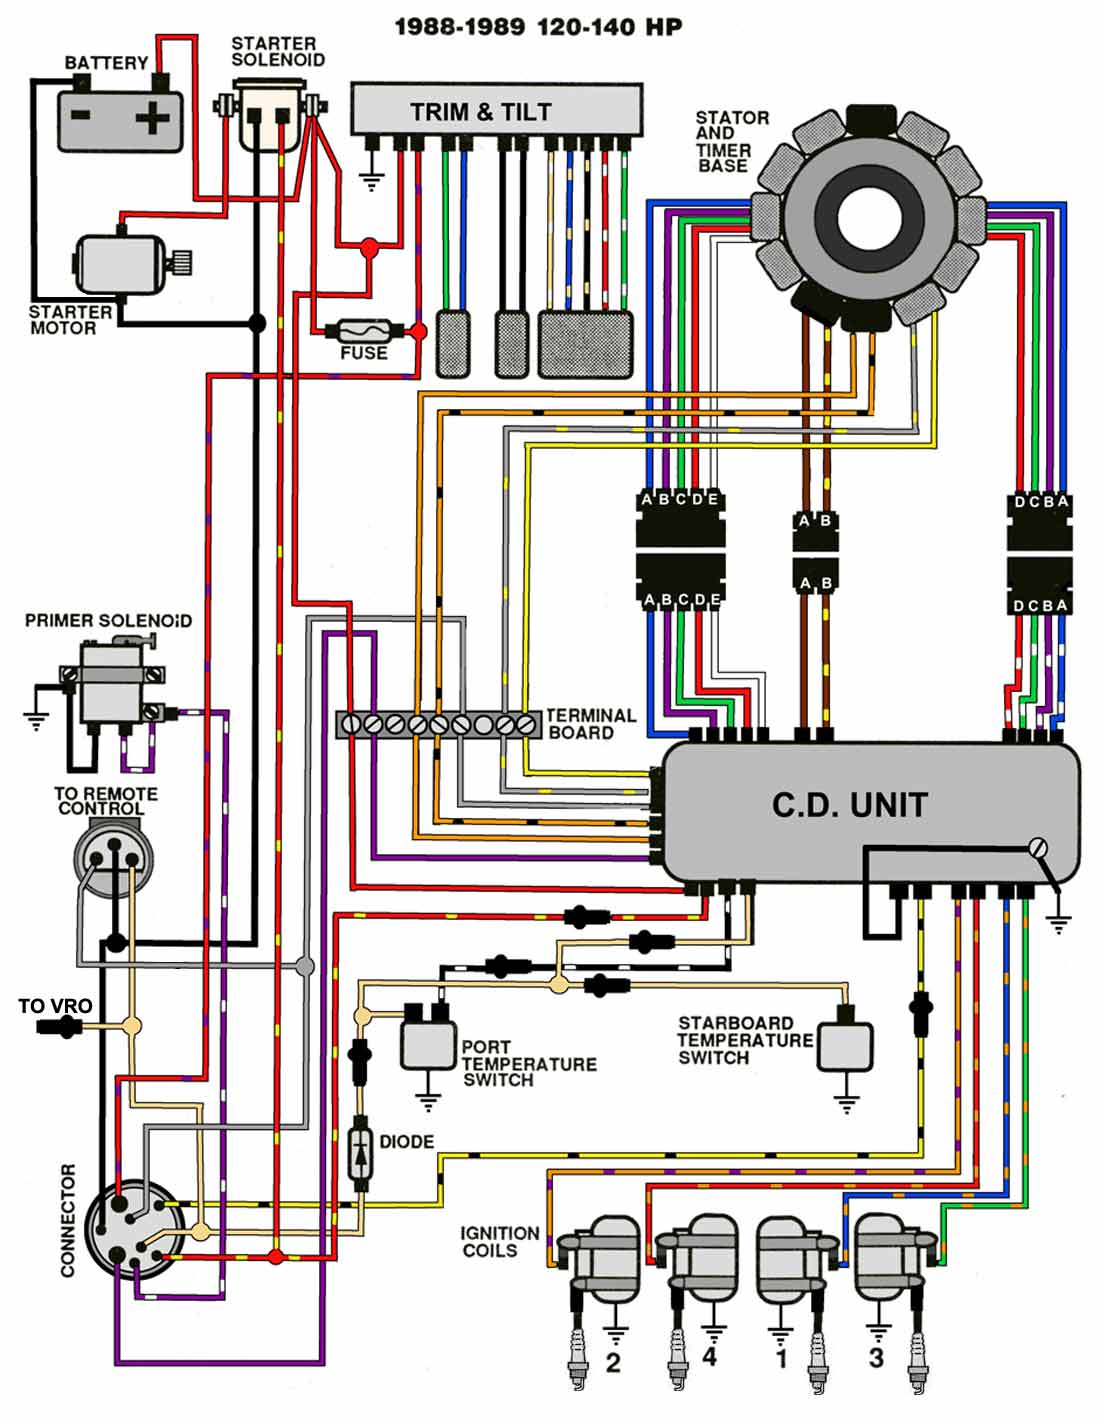 1987 Evinrude Ignition Switch Wiring Diagram | Repair Manual on